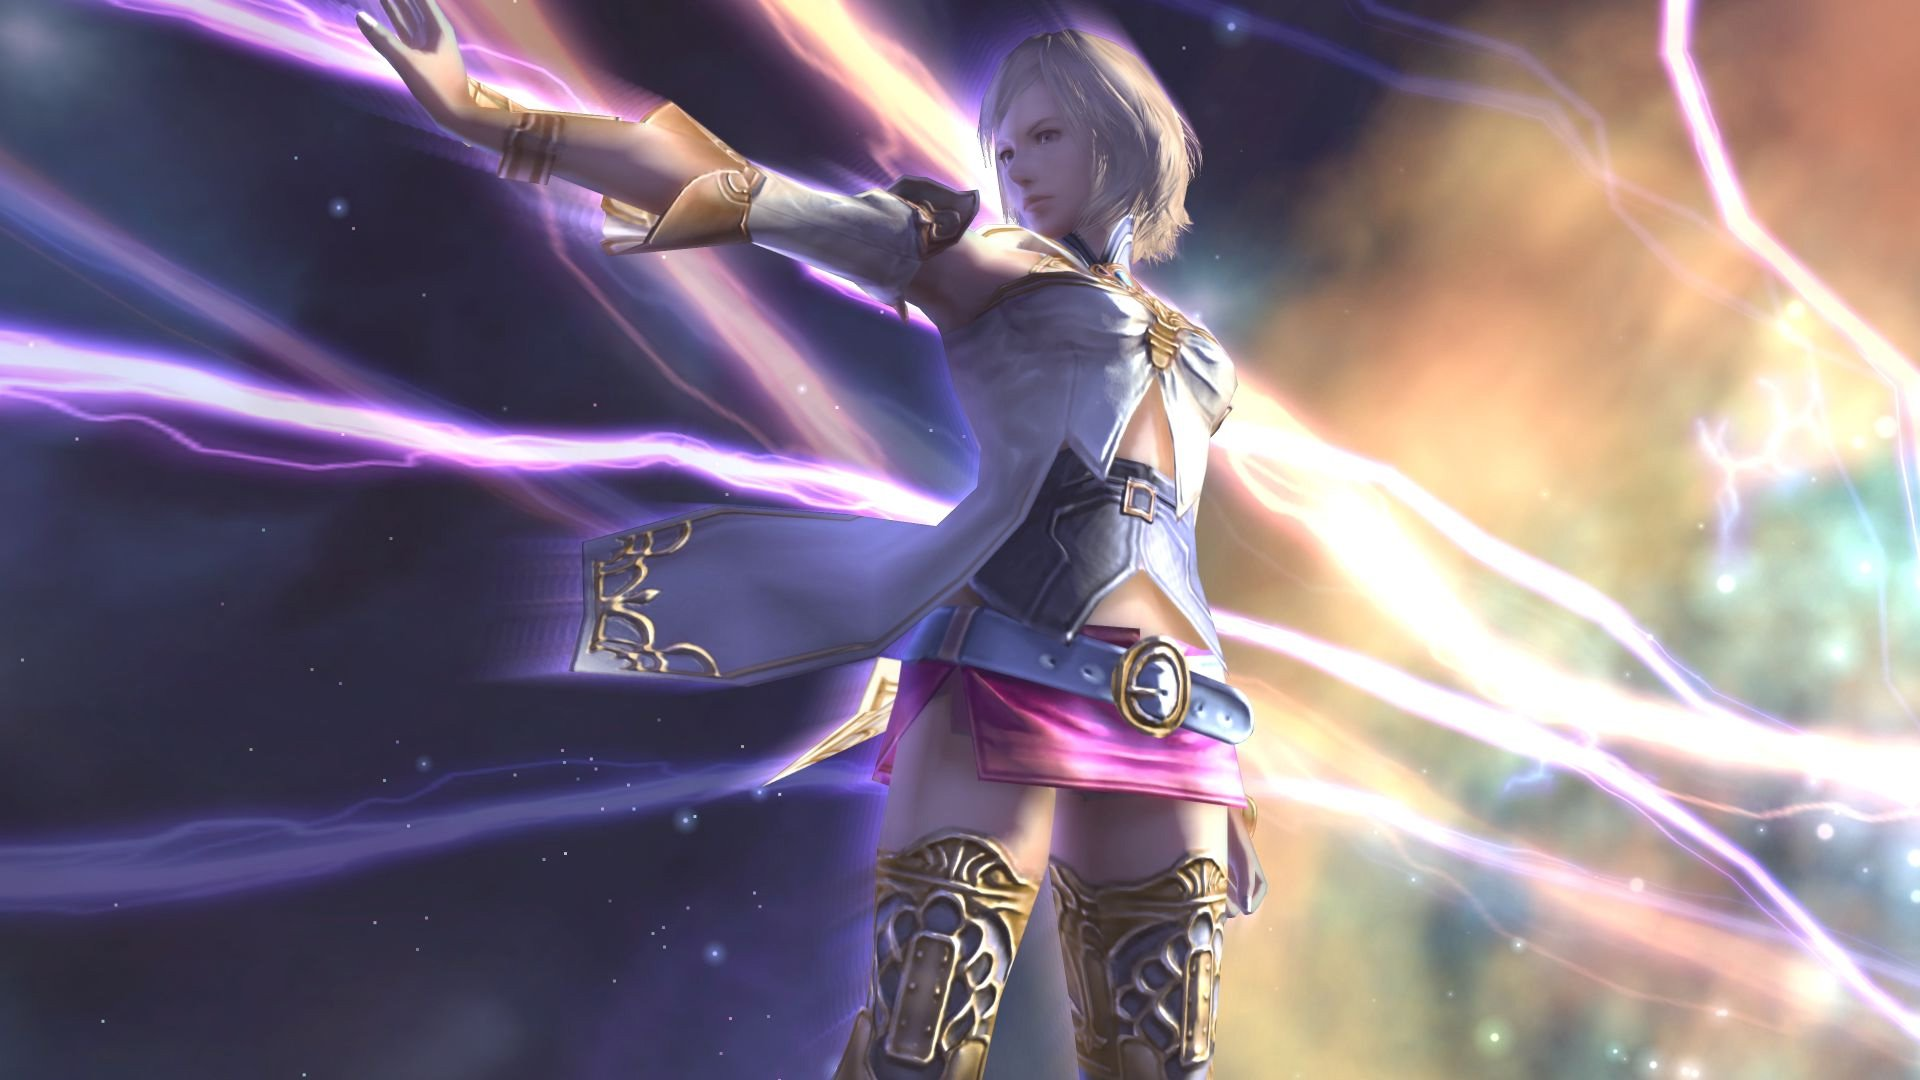 Final Fantasy XII: The Zodiac Age will have 60FPS support on PC screenshot